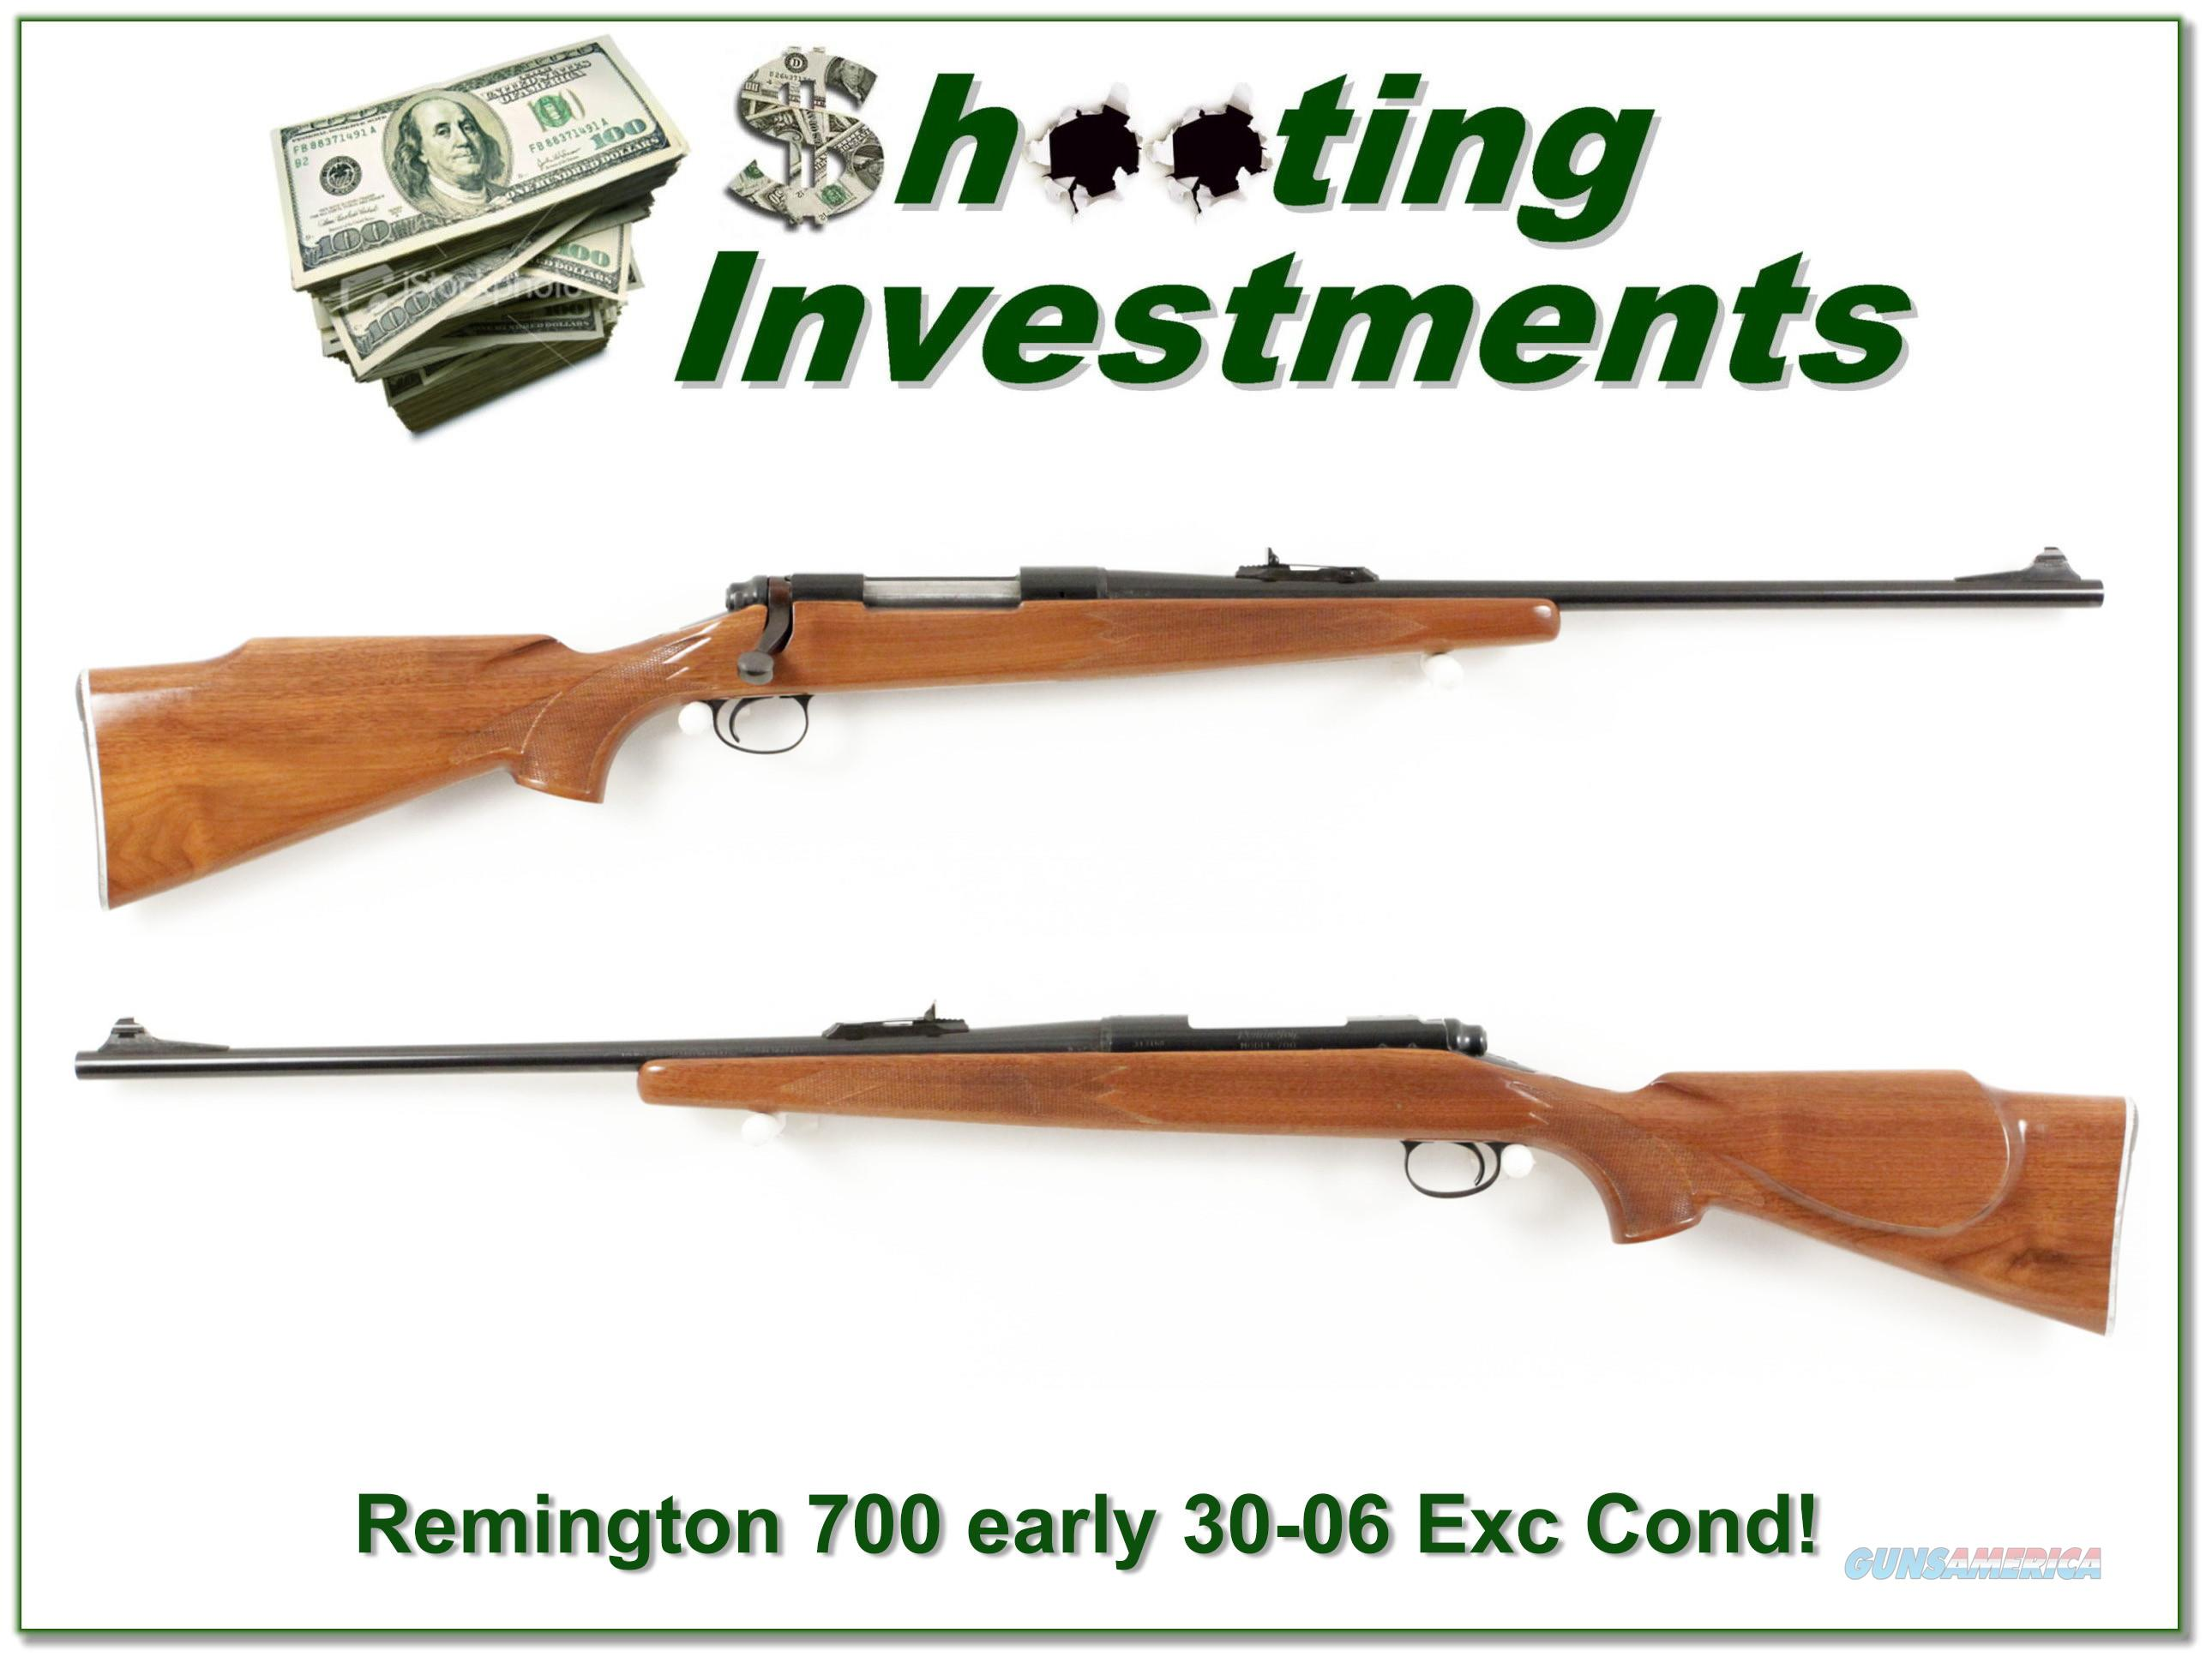 Early Remington 700 ADL 30-06 Pressed Checkering Exc Cond!  Guns > Rifles > Remington Rifles - Modern > Model 700 > Sporting